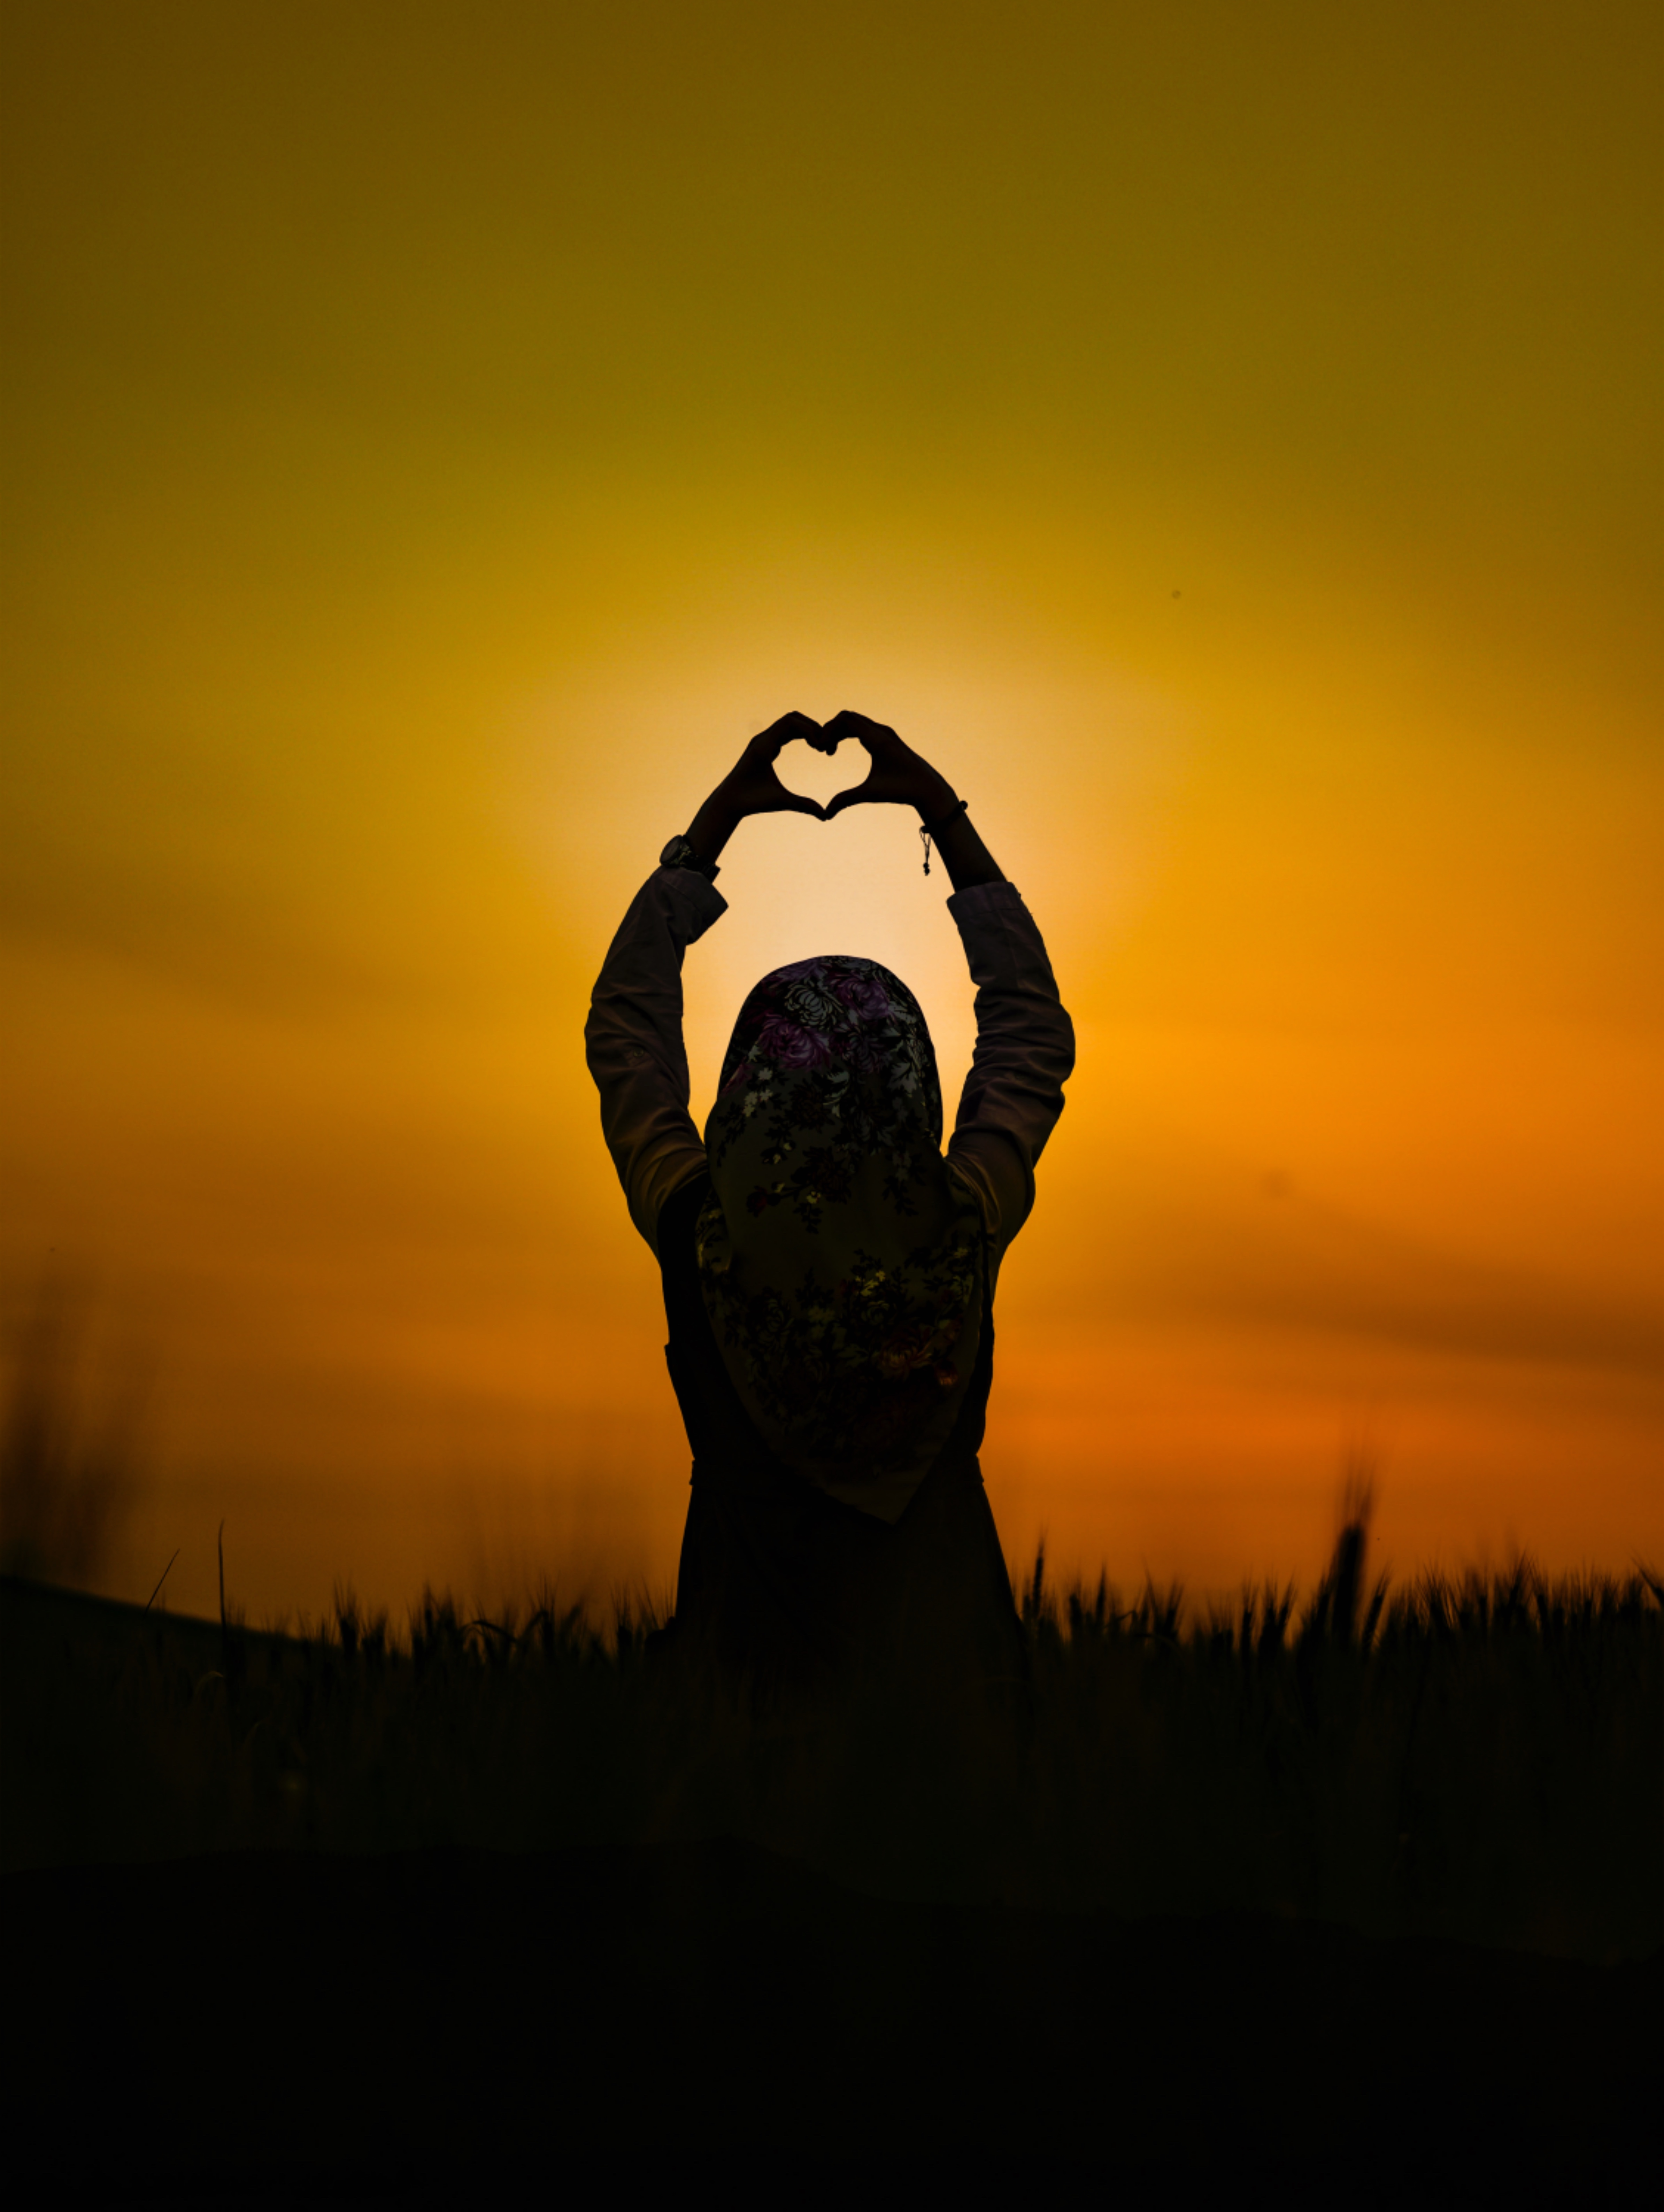 104044 download wallpaper Sunset, Love, Silhouette, Girl, Heart screensavers and pictures for free